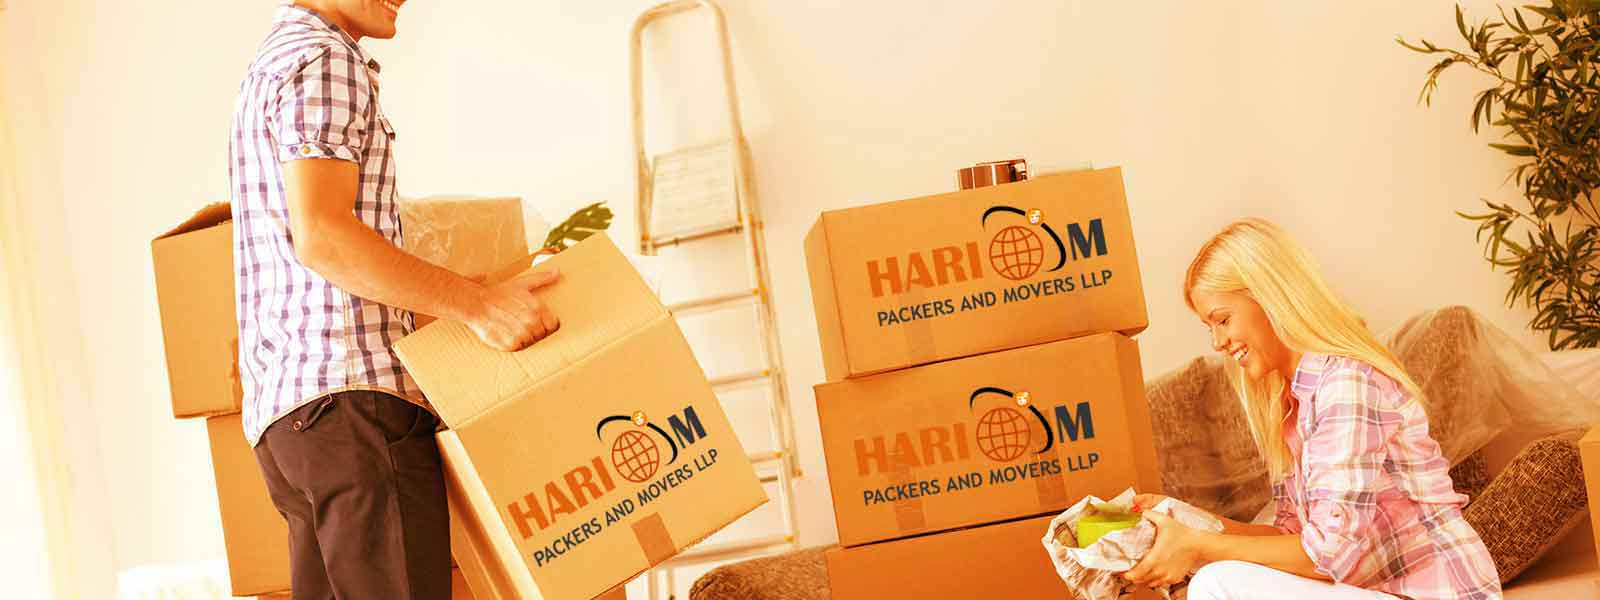 Hari Om Packers and Movers Agra, Mathura